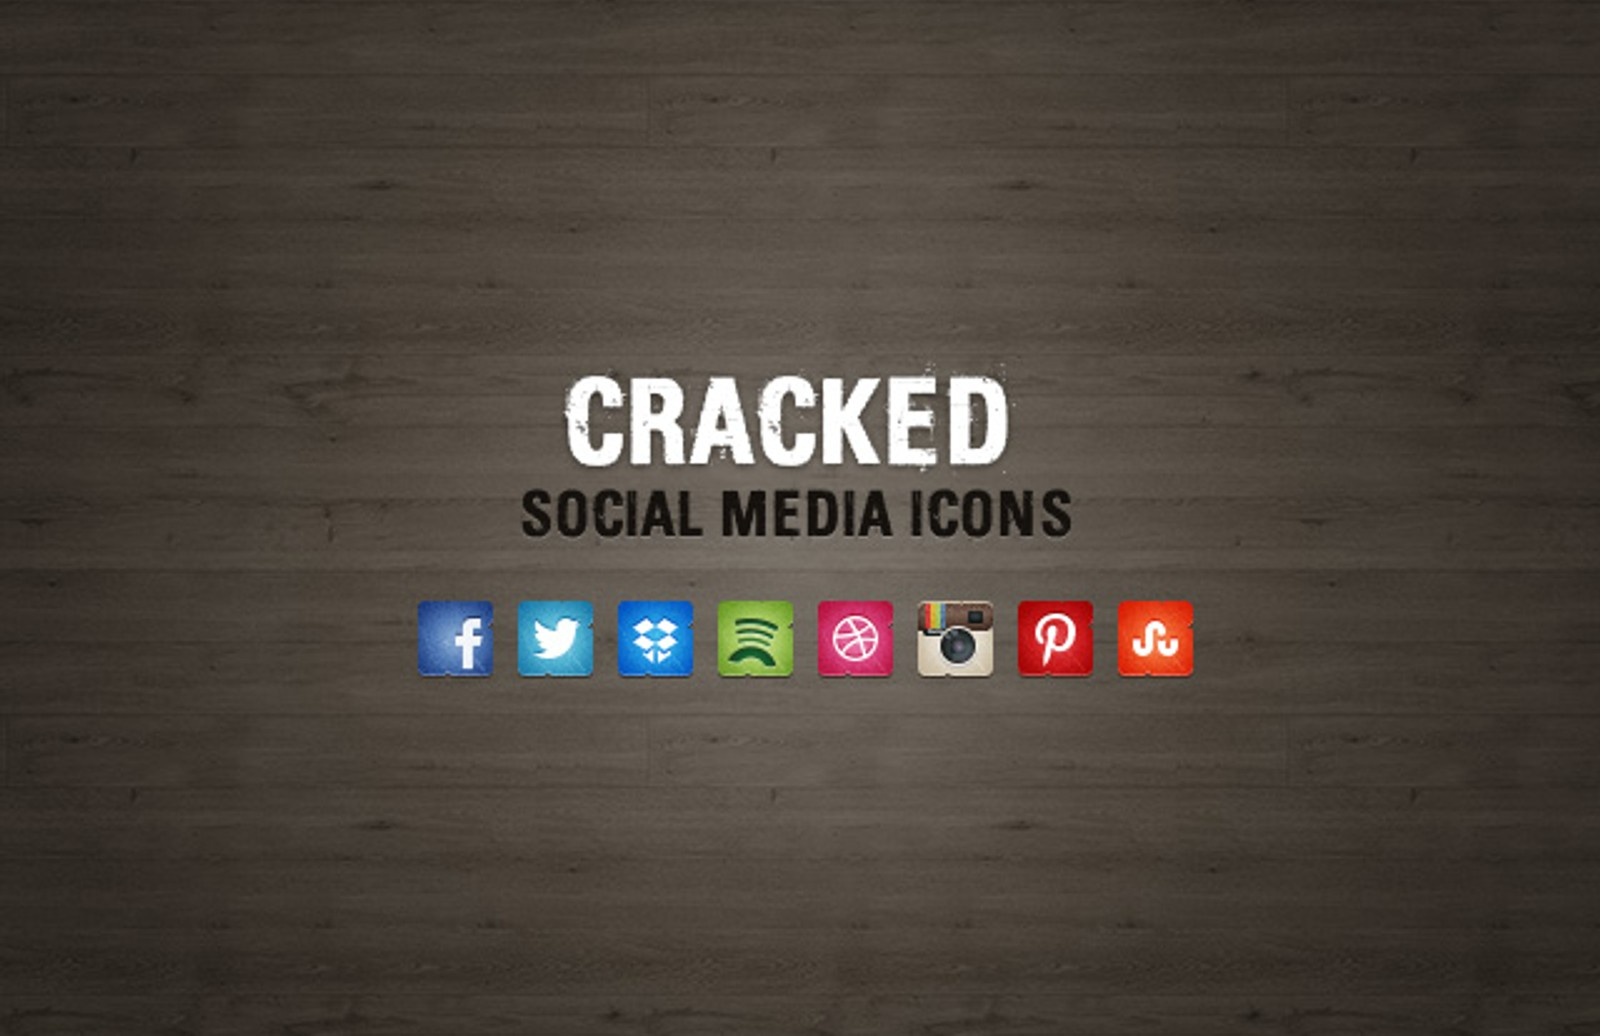 Cracked  Social  Media  Icons  Preview1